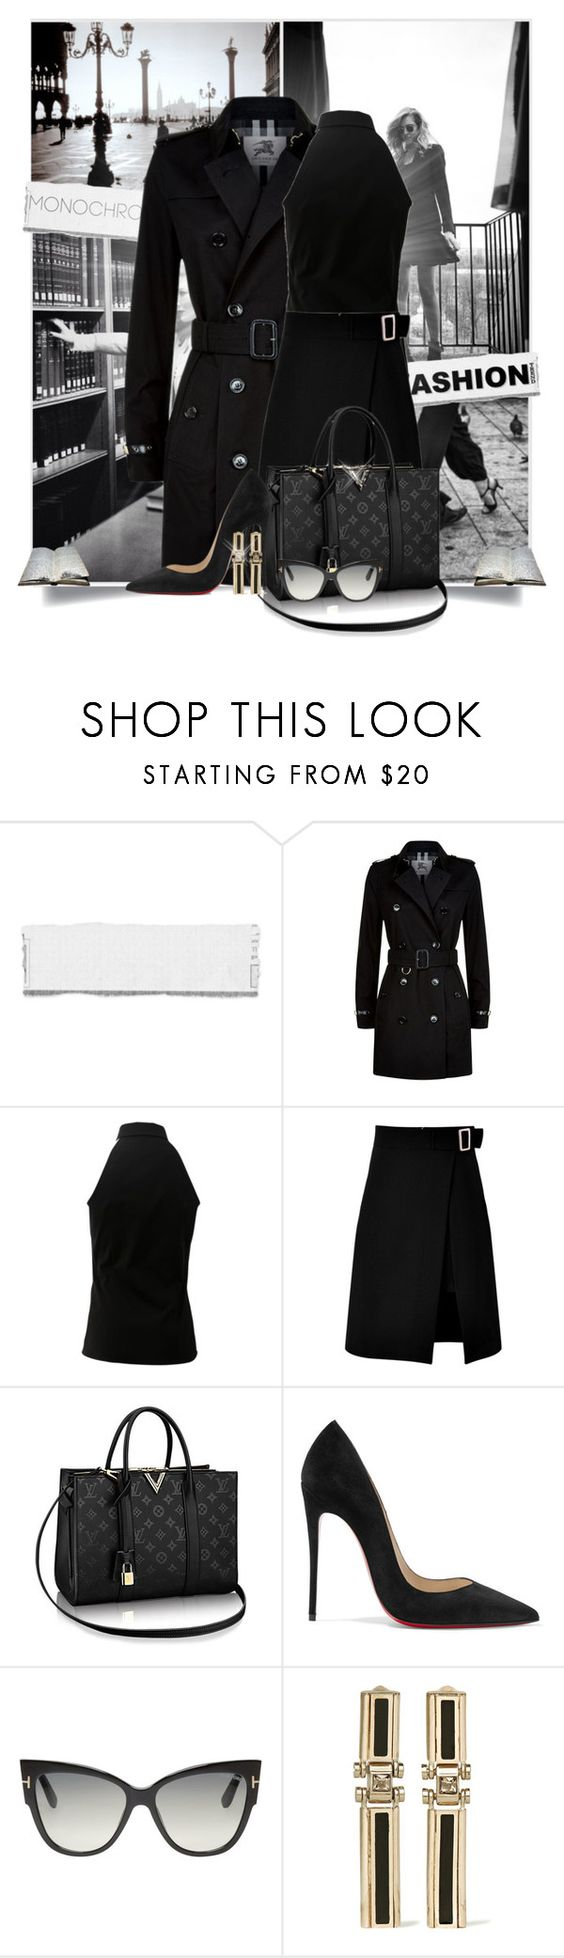 """Black Monochrome - Tres Chique"" by tina-abbara ❤ liked on Polyvore featuring Burberry, Michael Kors, storets, Christian Louboutin, Tom Ford and Lanvin"